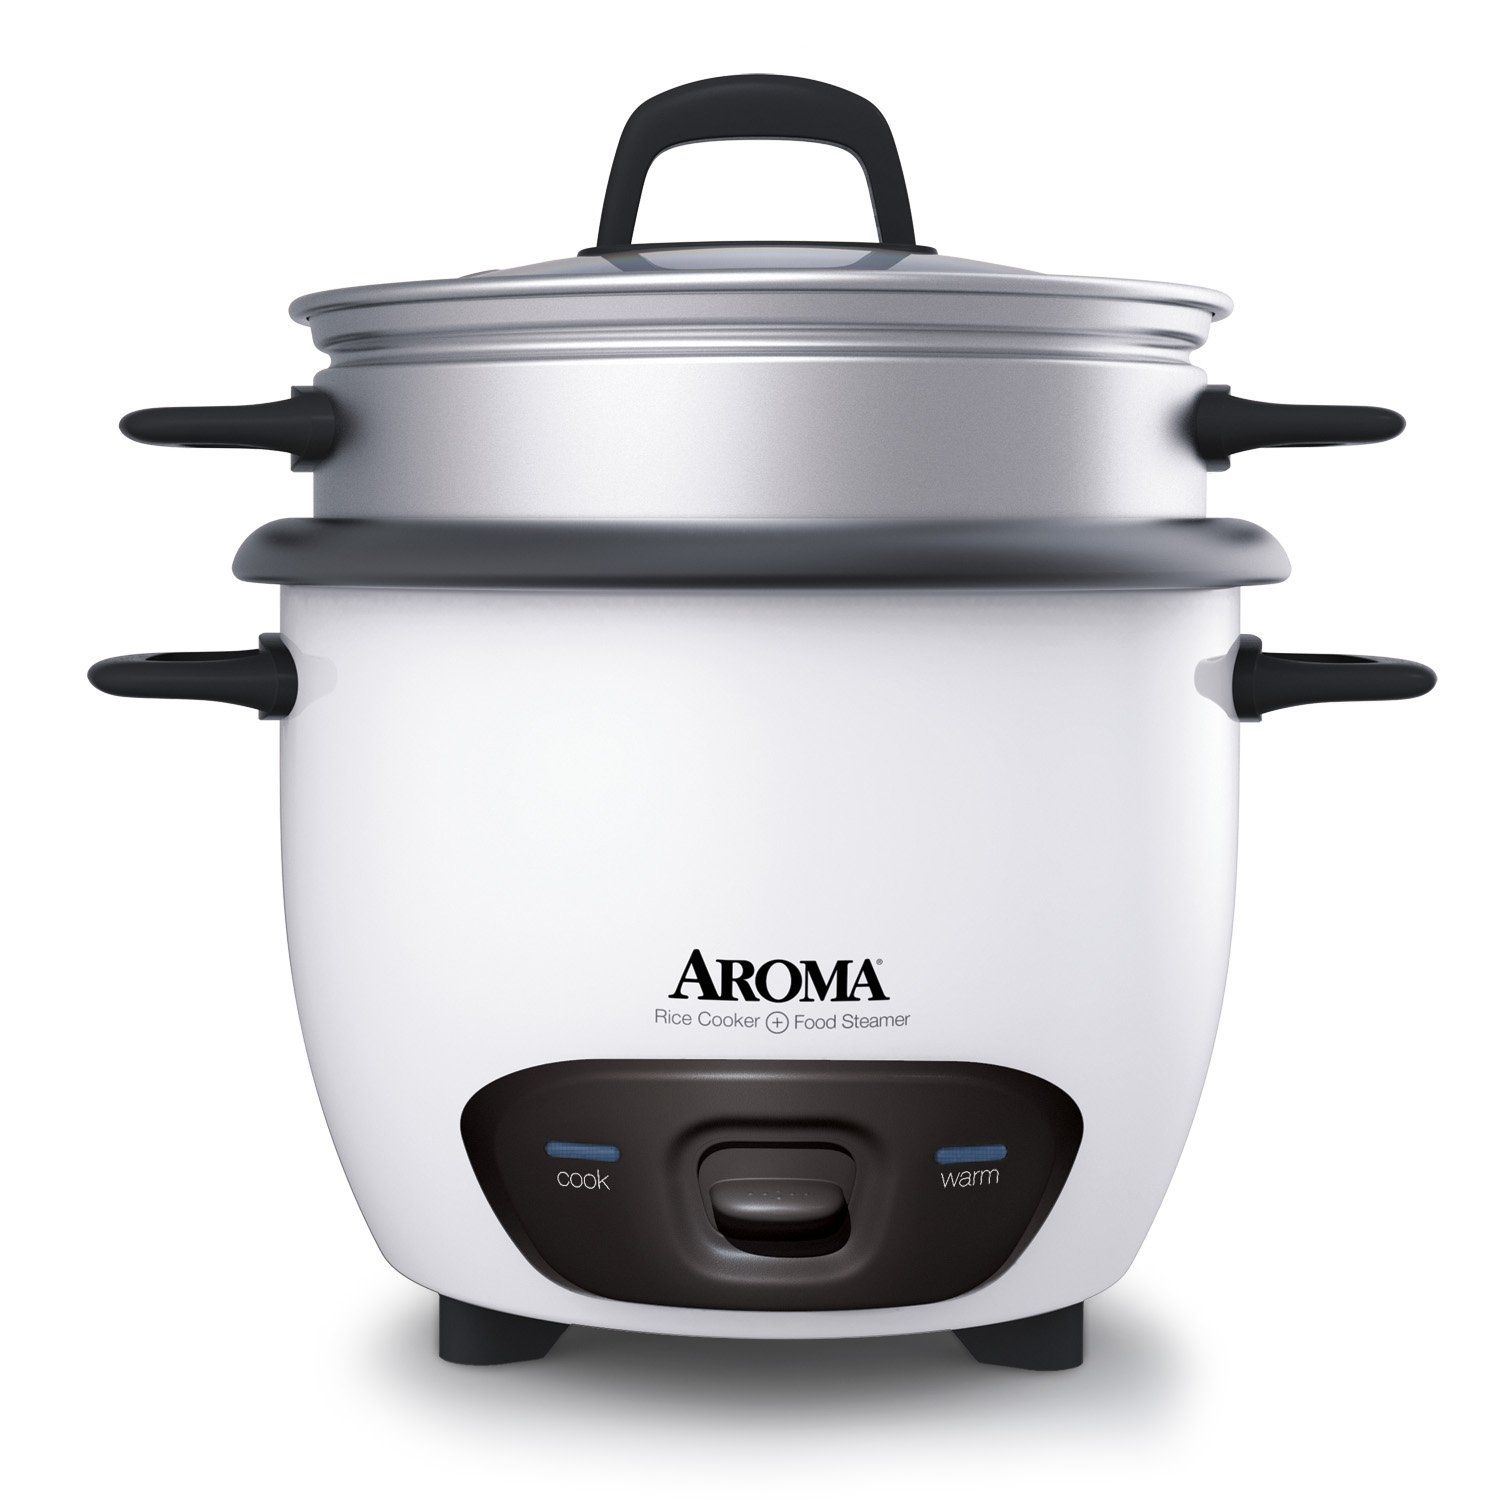 Aroma Housewares 6-Cup (Cooked)  (3-Cup UNCOOKED) Pot Style Rice Cooker and Food Steamer (ARC-743-1NG) by Aroma Housewares (Image #1)